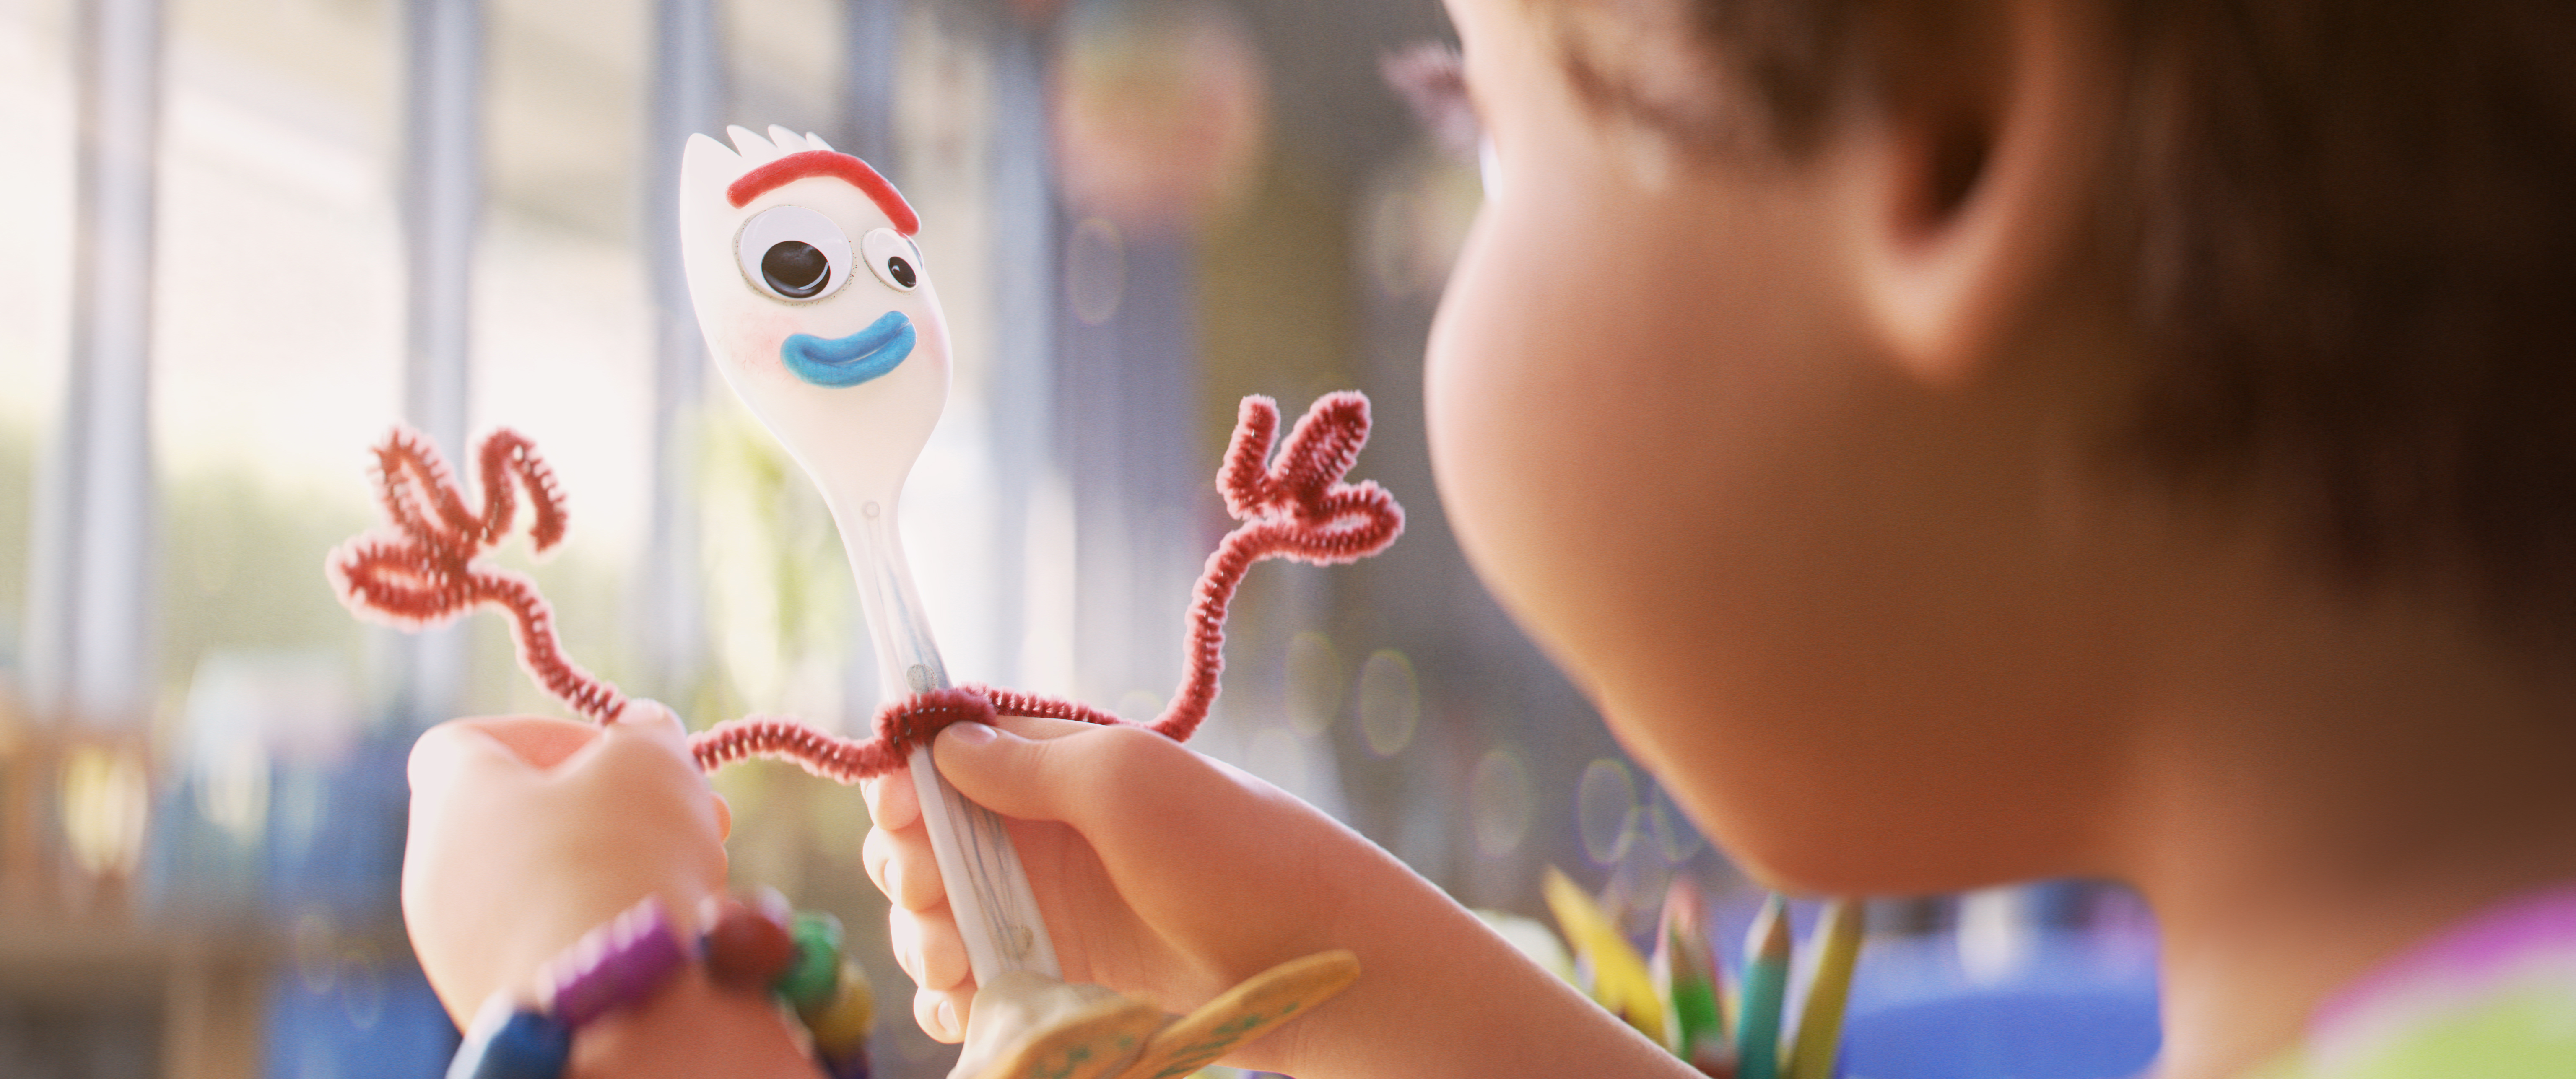 Tony Hale as the voice of Forky in Toy Story 4